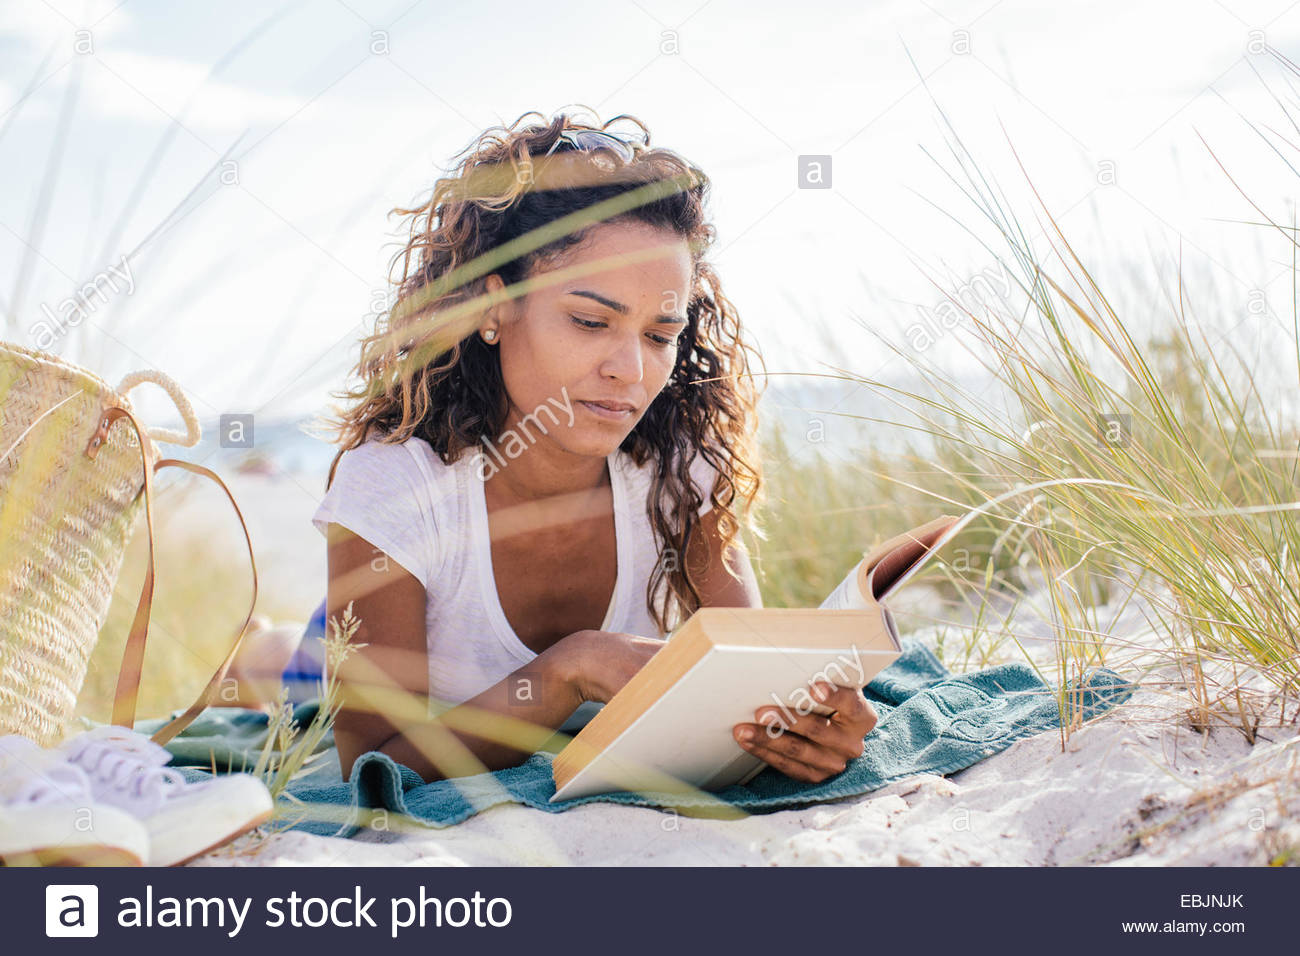 Young woman cross reading a book in beach dunes, Tuscany, Italy - Stock Image